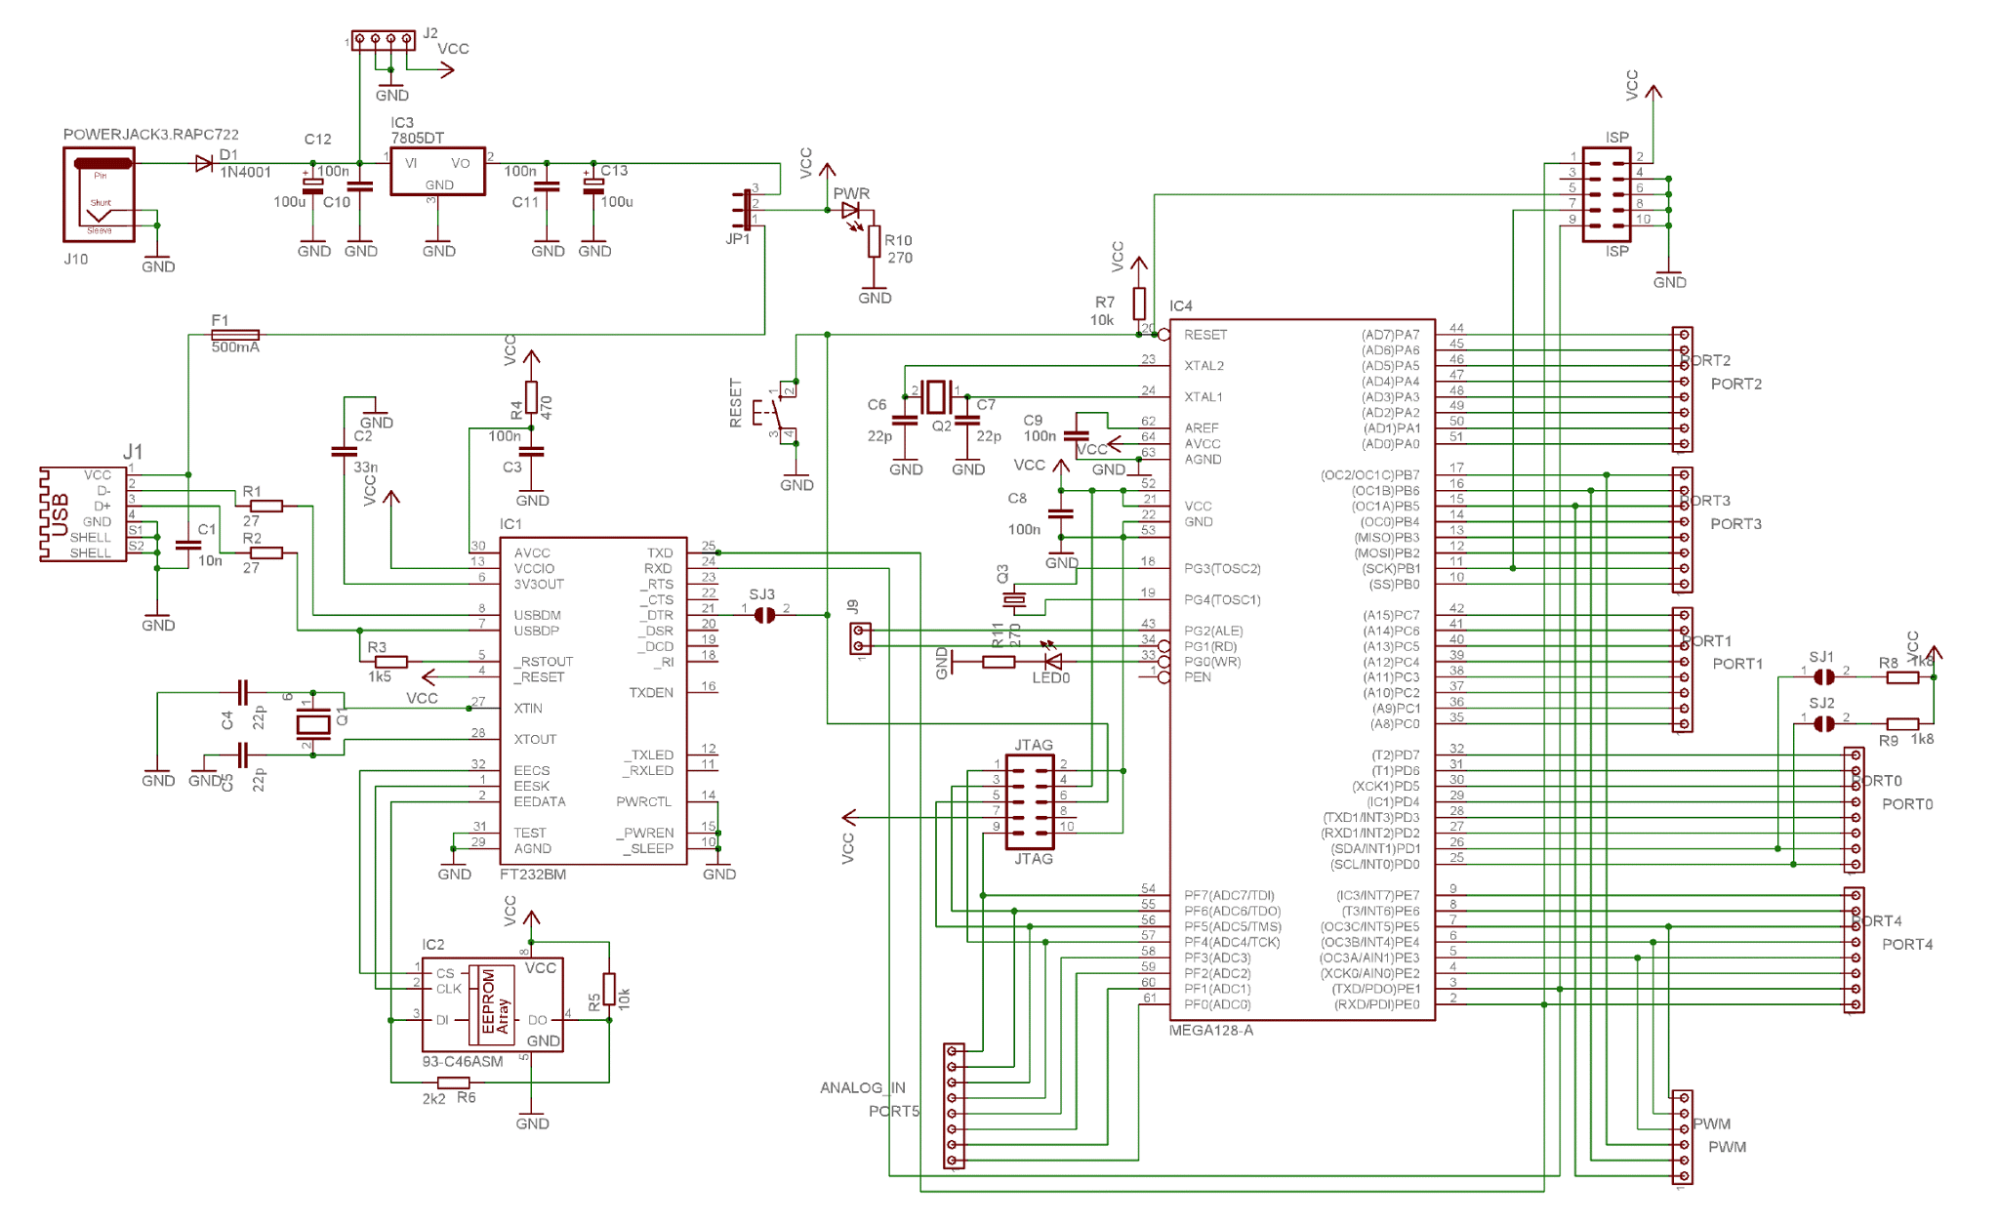 Wiring schematic the untold history of arduino engineered air he series wiring diagram at honlapkeszites.co